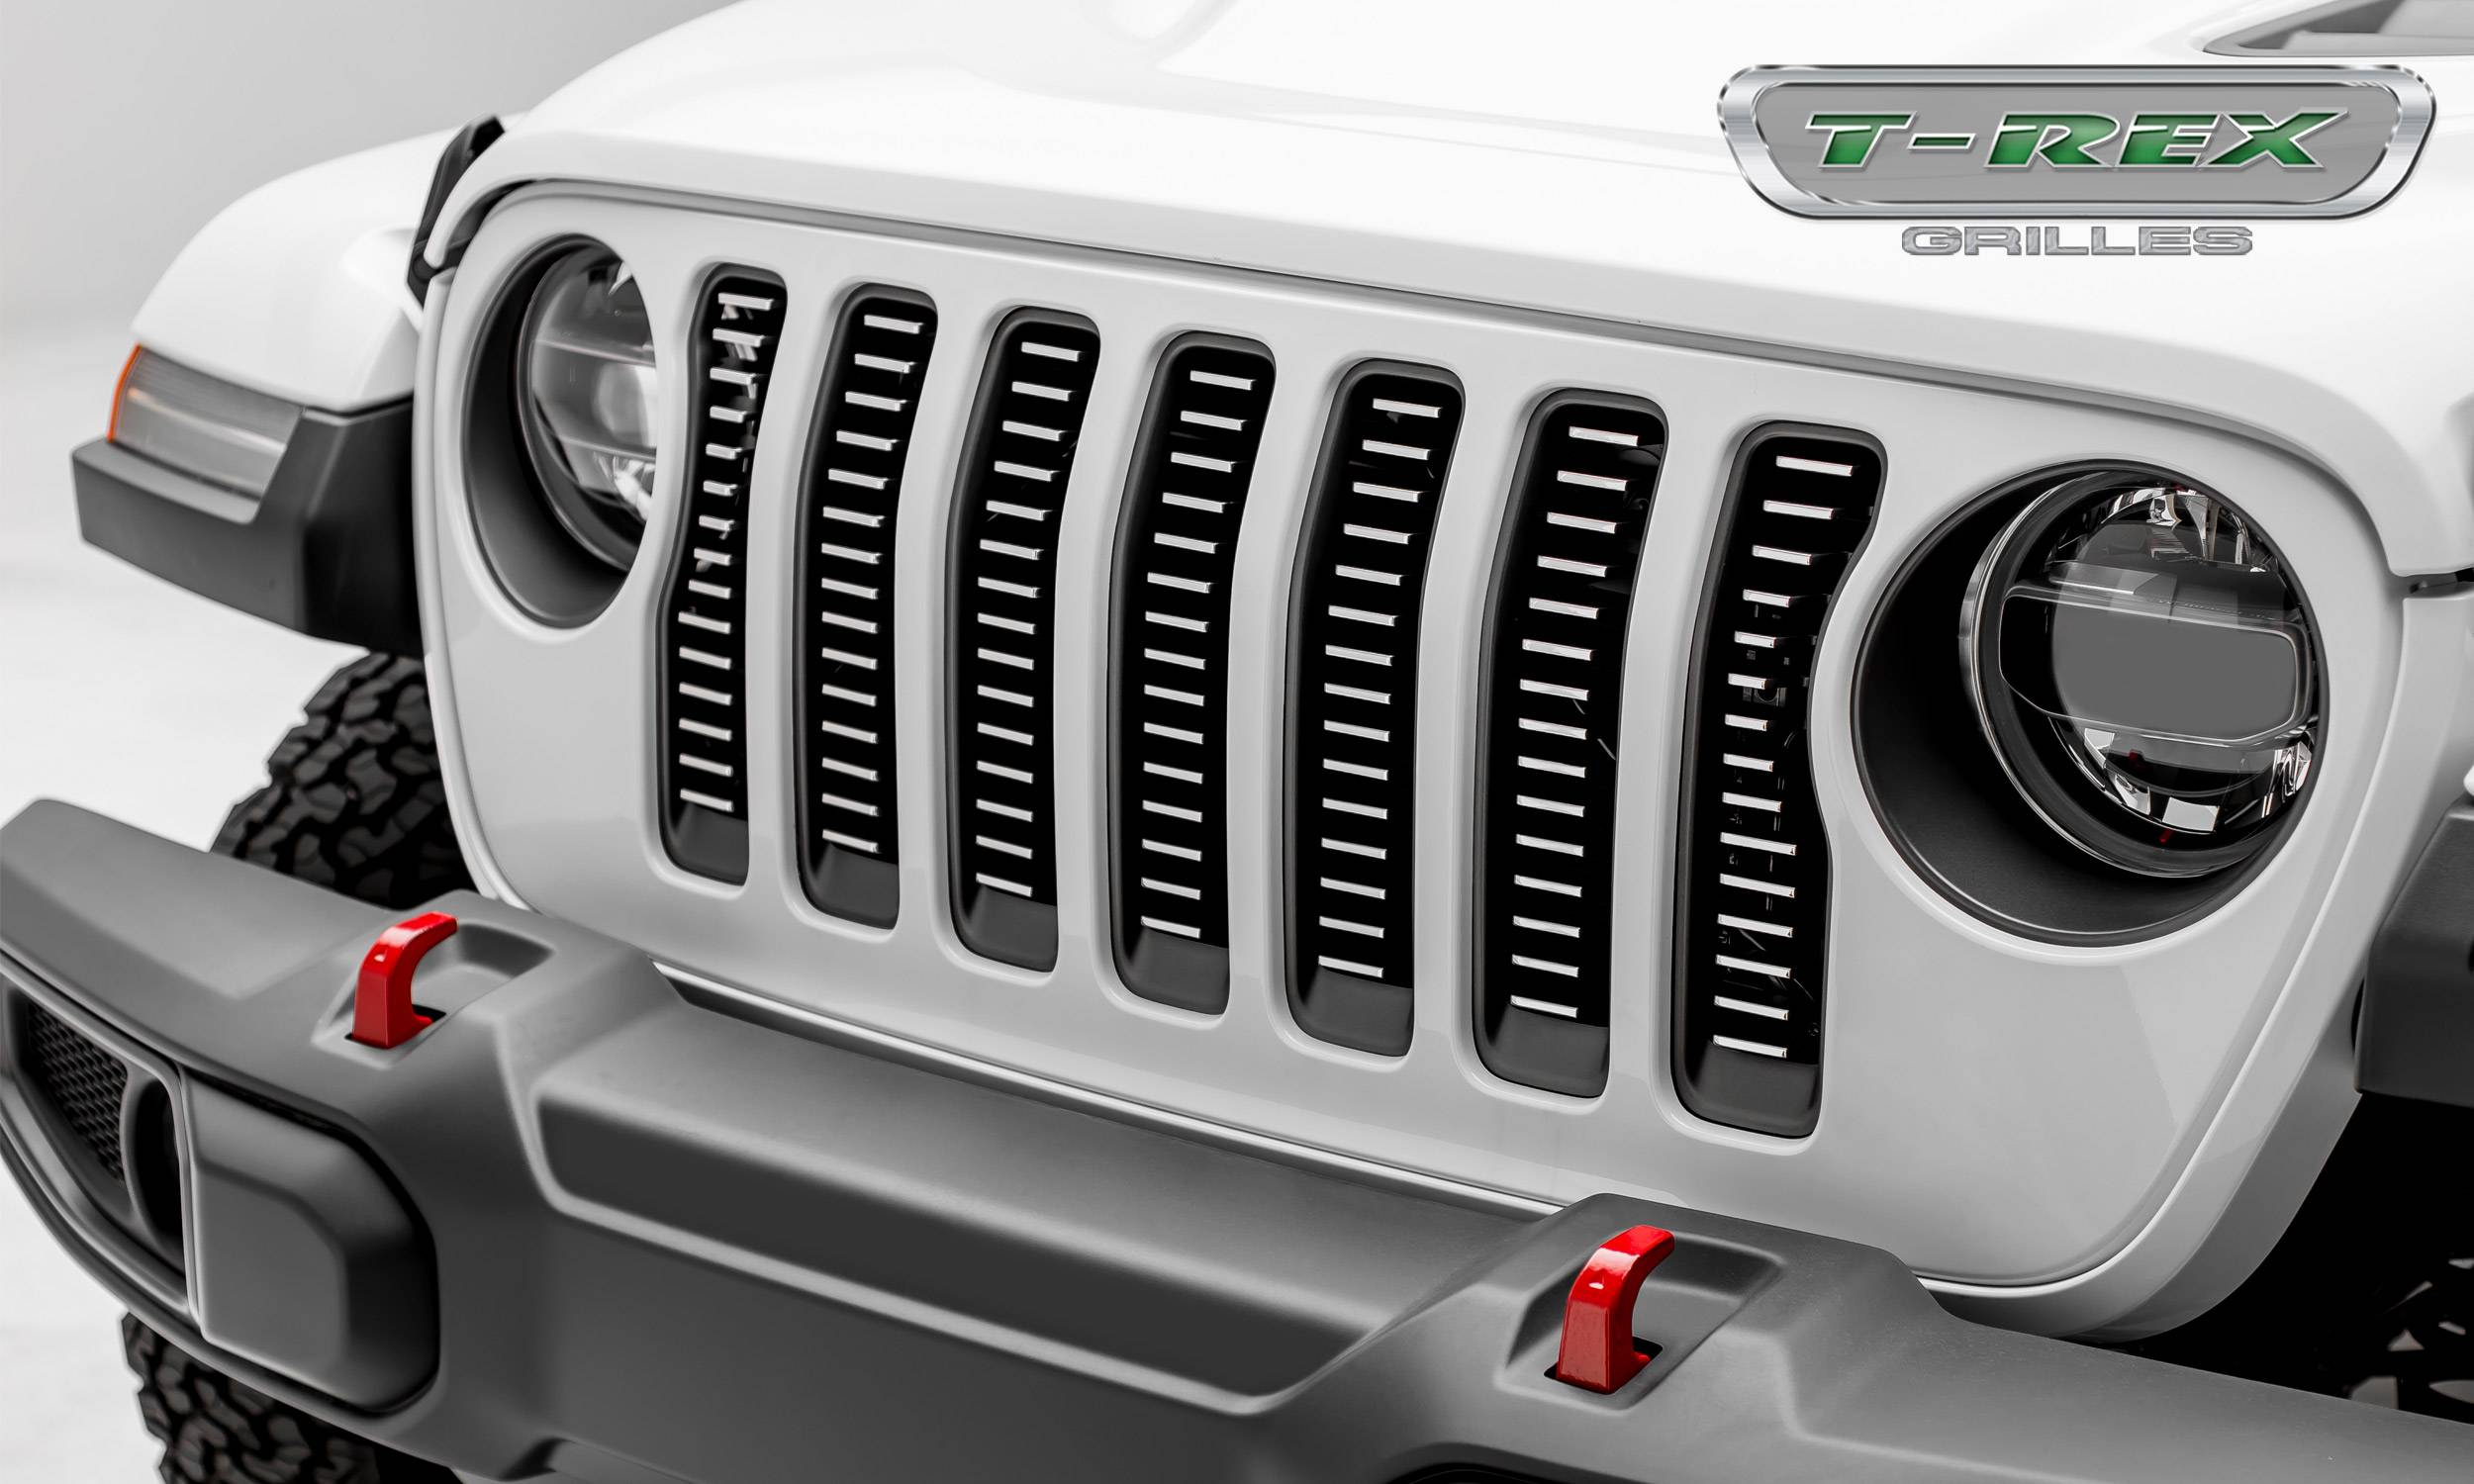 T-REX Grilles - Jeep Wrangler JL - Billet Series -  3/16' Thick Laser Cut Aluminum - Insert Bolts-On Behind Factory Grille -  Brushed Finish Face - Pt # 6204933